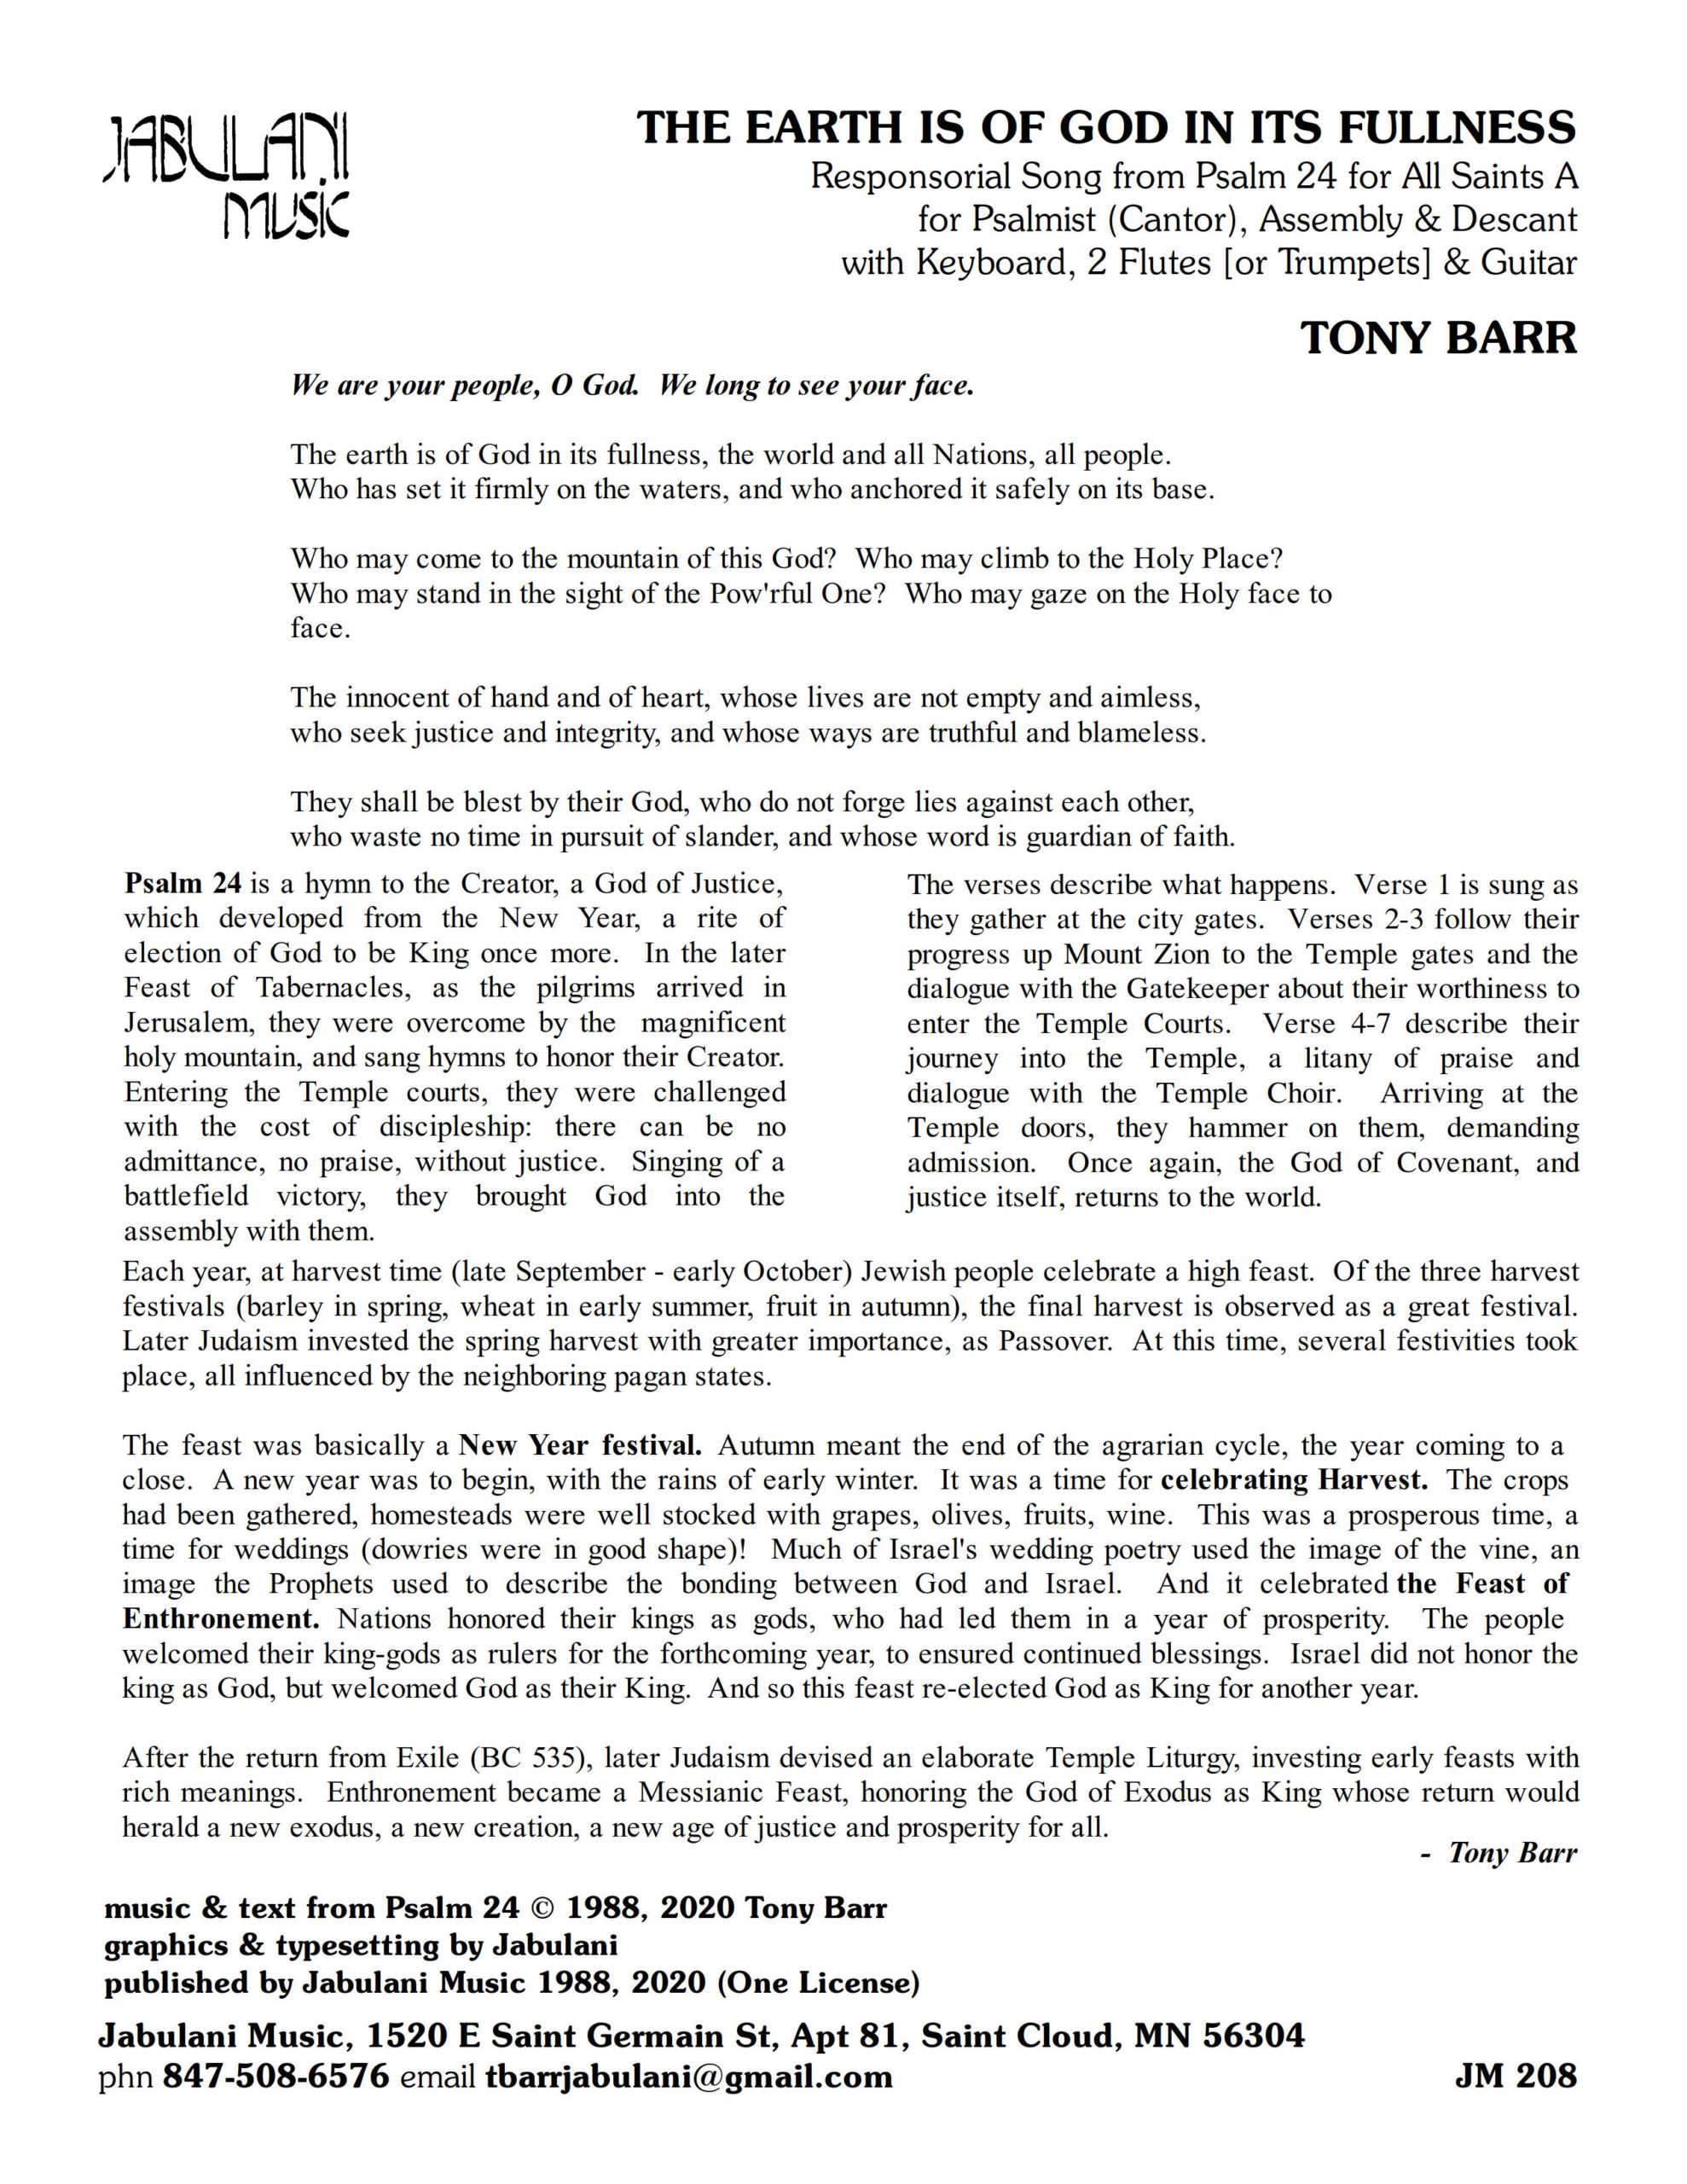 All Saints Ps 24 The Earth Is Of God In Its Fullness jm 208 Sample Complete PDF 1 png